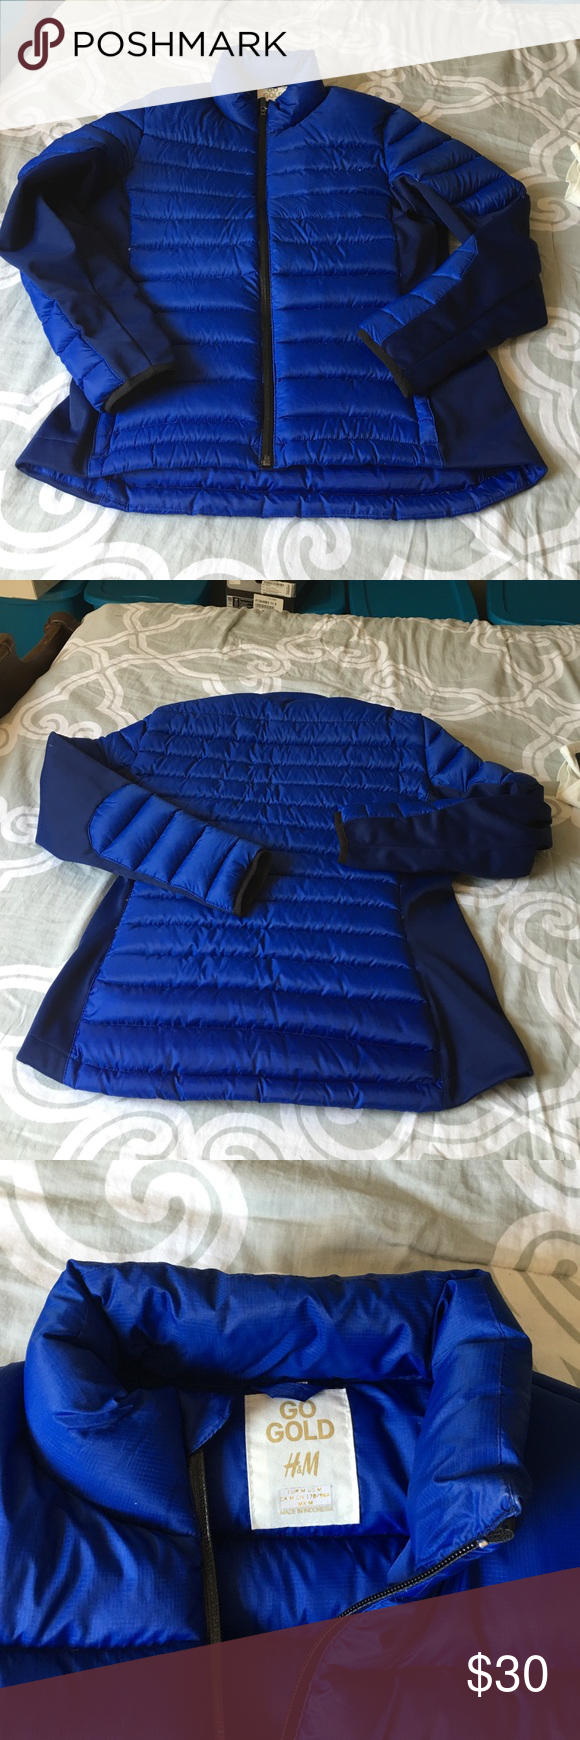 NWOT Gorgeous Blue Fitted Puffer Coat This is a gorgeous coat that has never been worn. Slim fit with give from side insert neoprene material on both sides and elbows/arms. Zip up front with 2 front zip close pockets. Sits at natural waist. Go Gold H& M Jackets & Coats Puffers